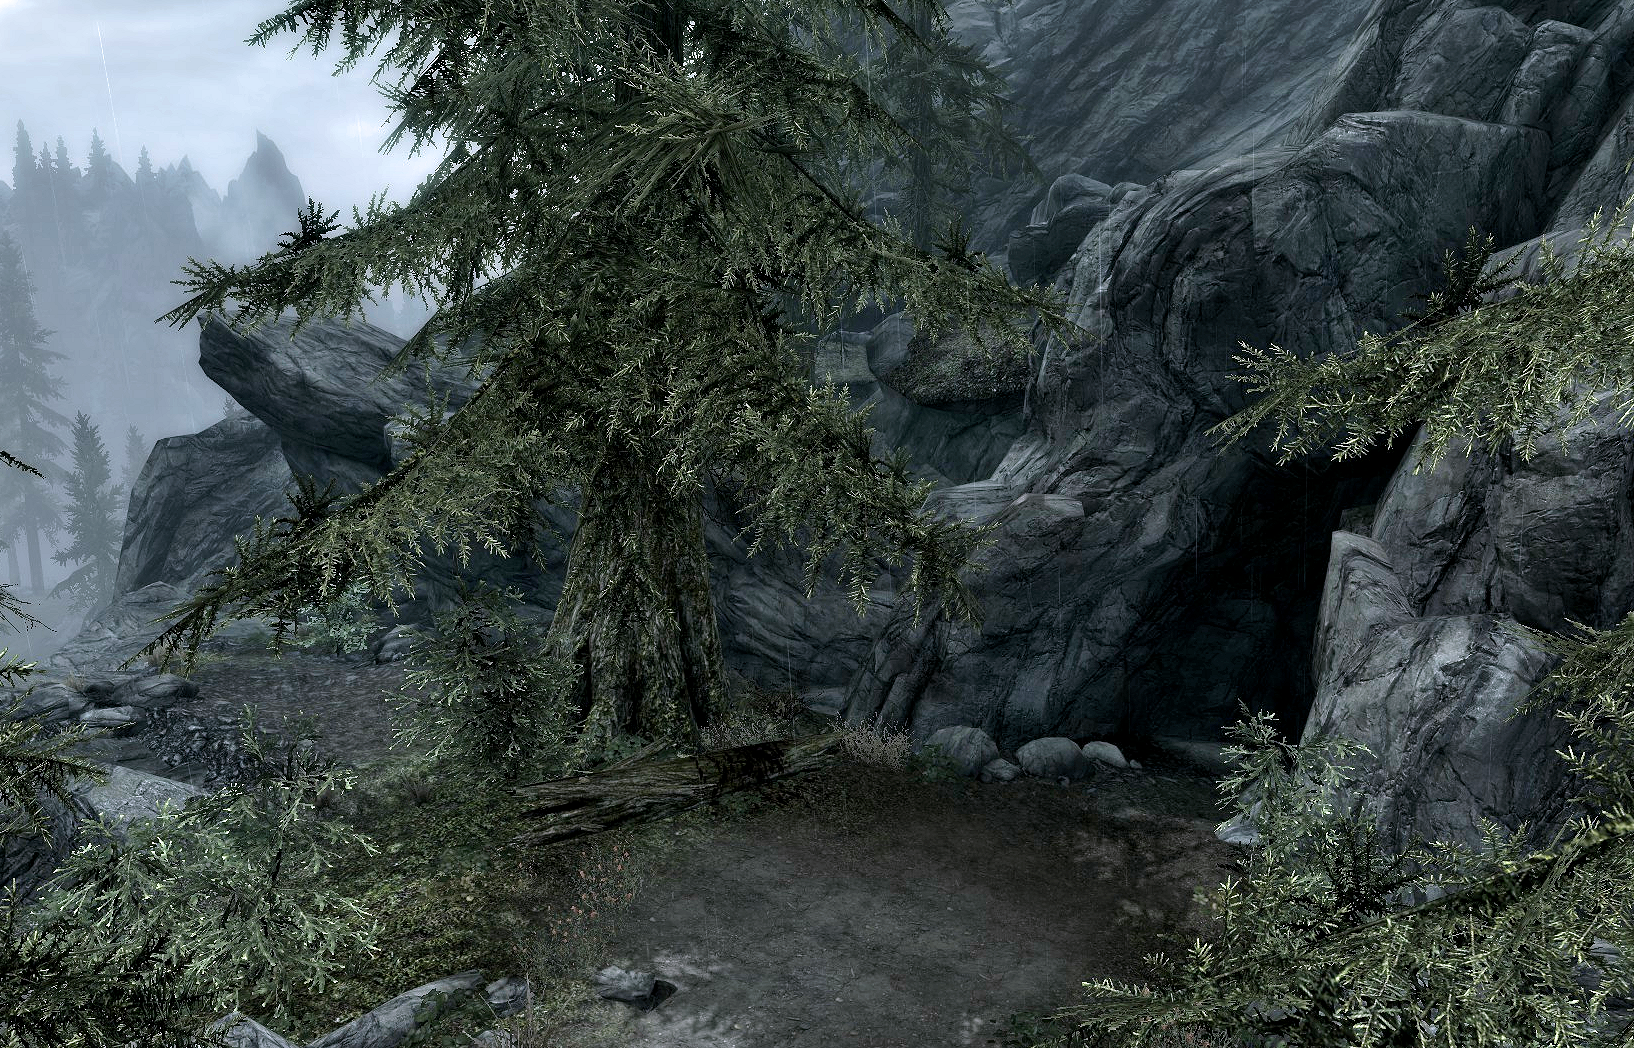 Moss Mother Cavern Elder Scrolls Fandom Powered By Wikia